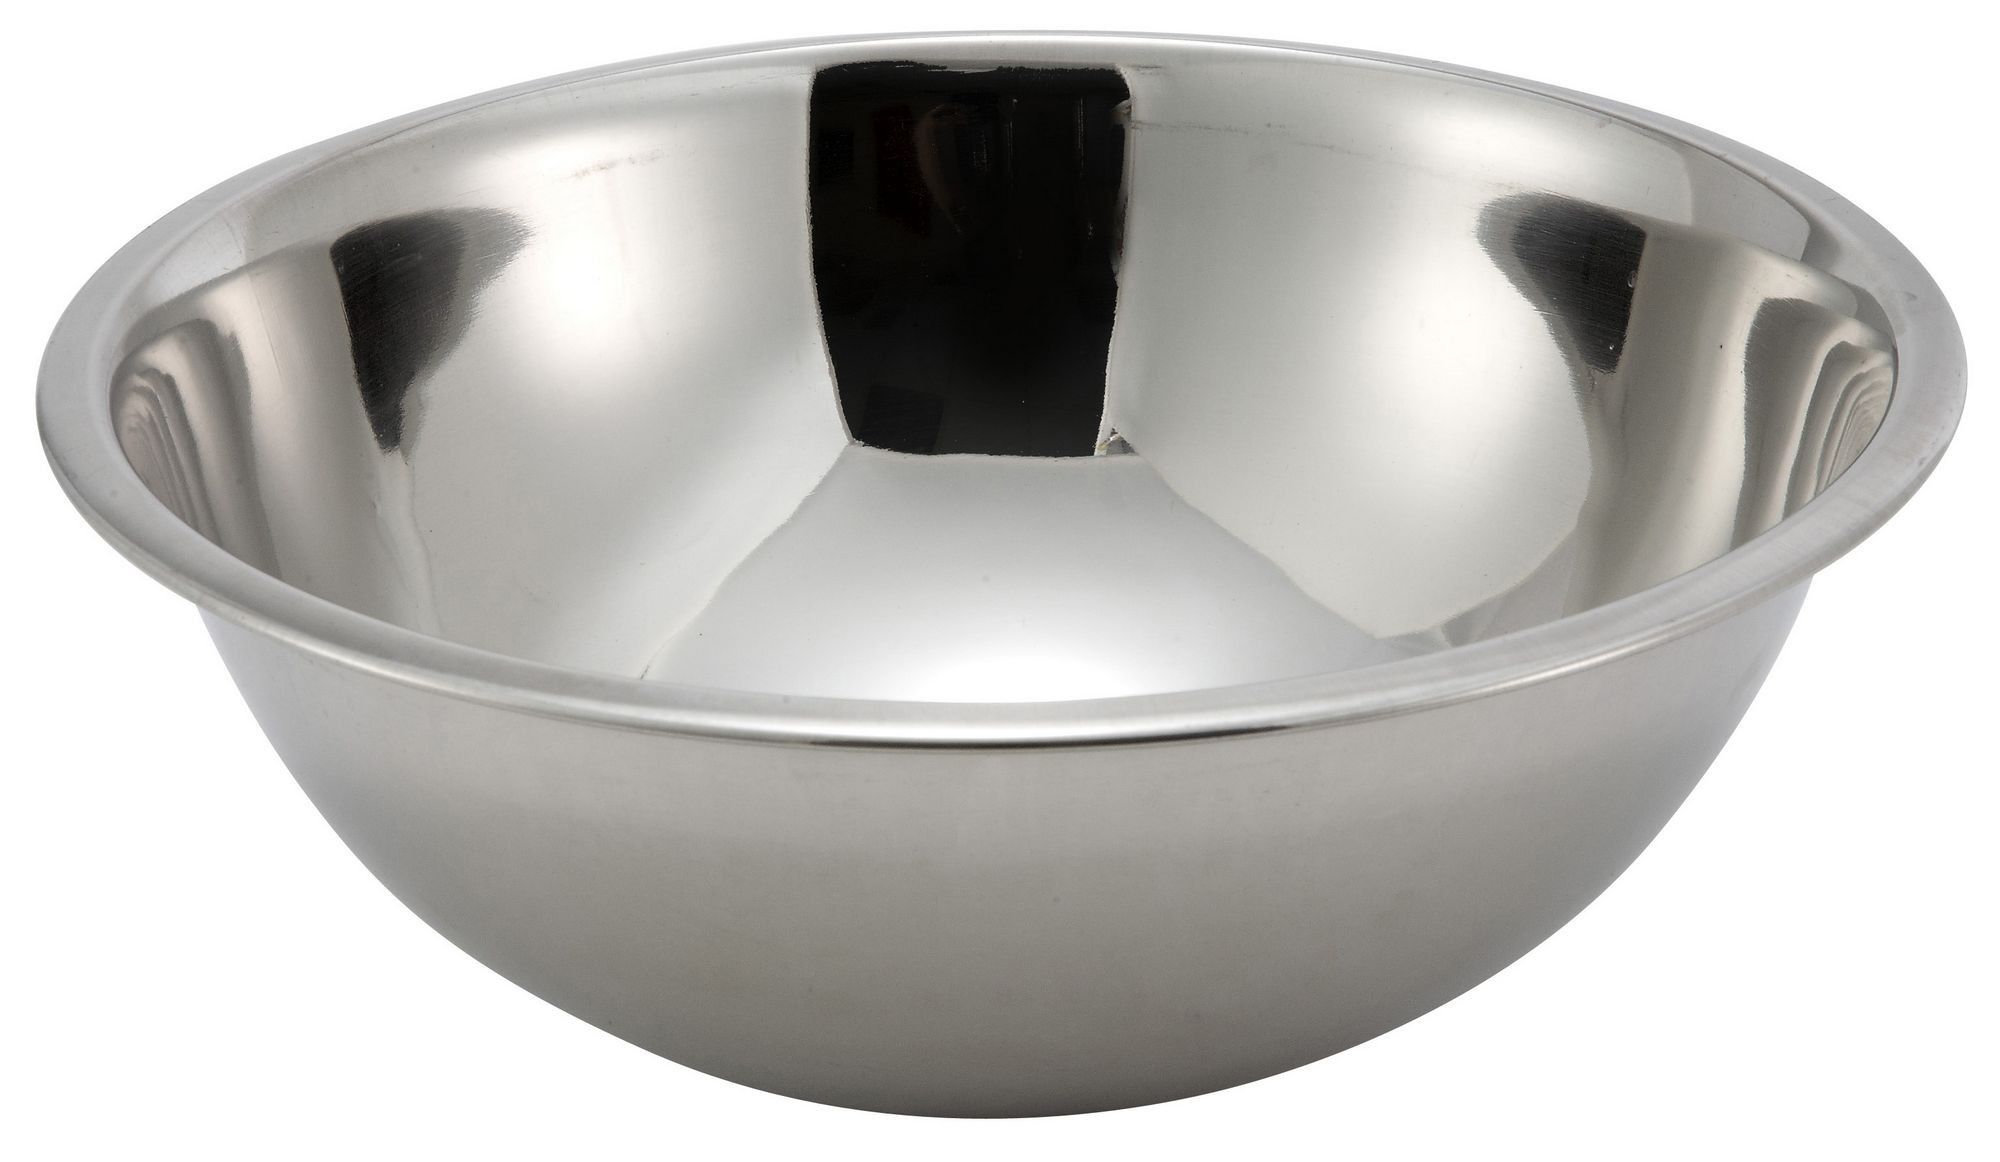 Winco MXB-500Q Stainless Steel 5 Qt. Mixing Bowl